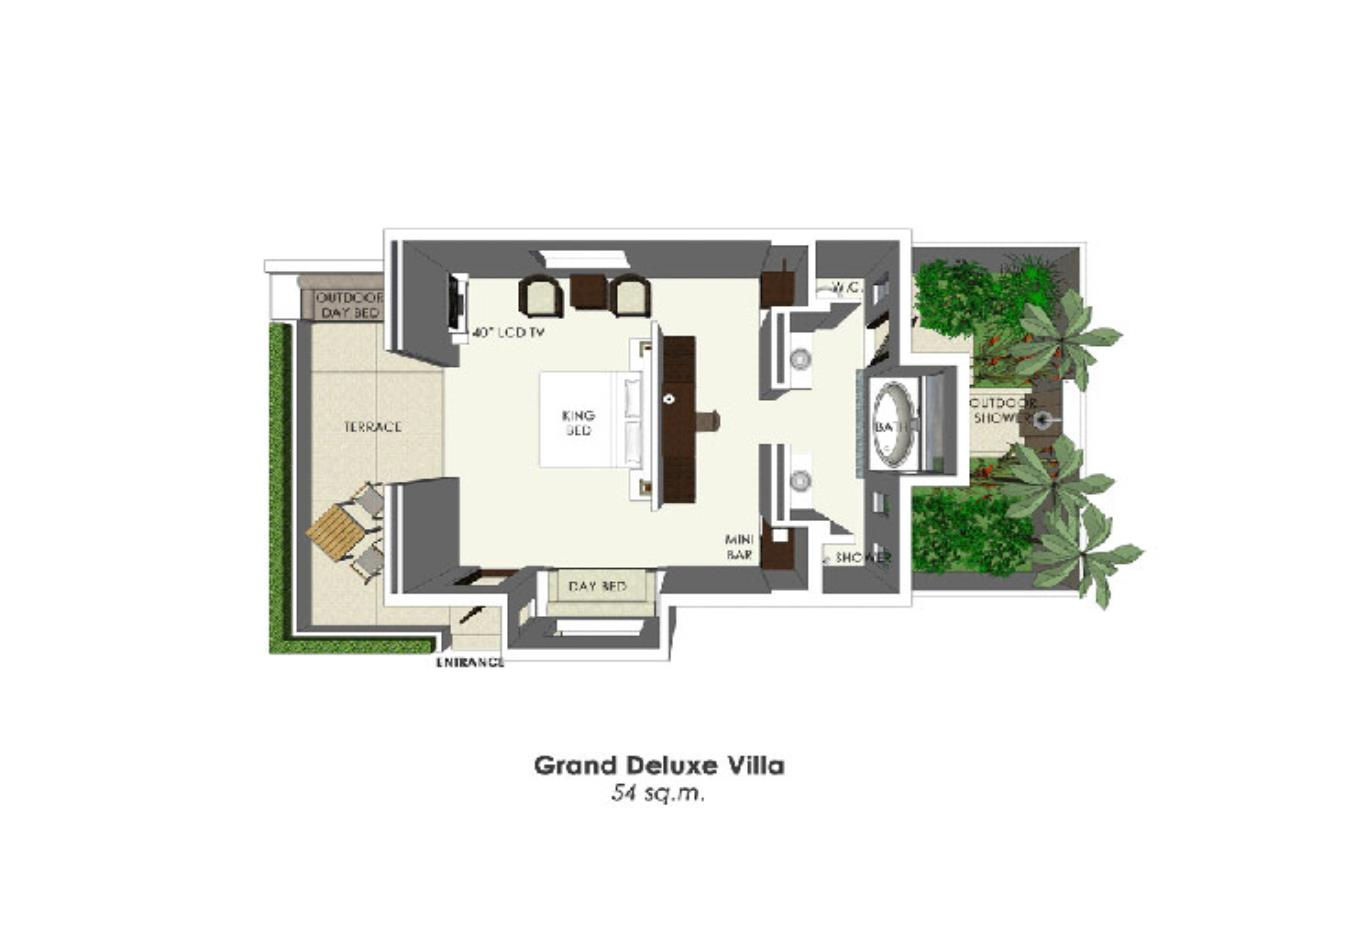 Grand Deluxe Villa floorplan